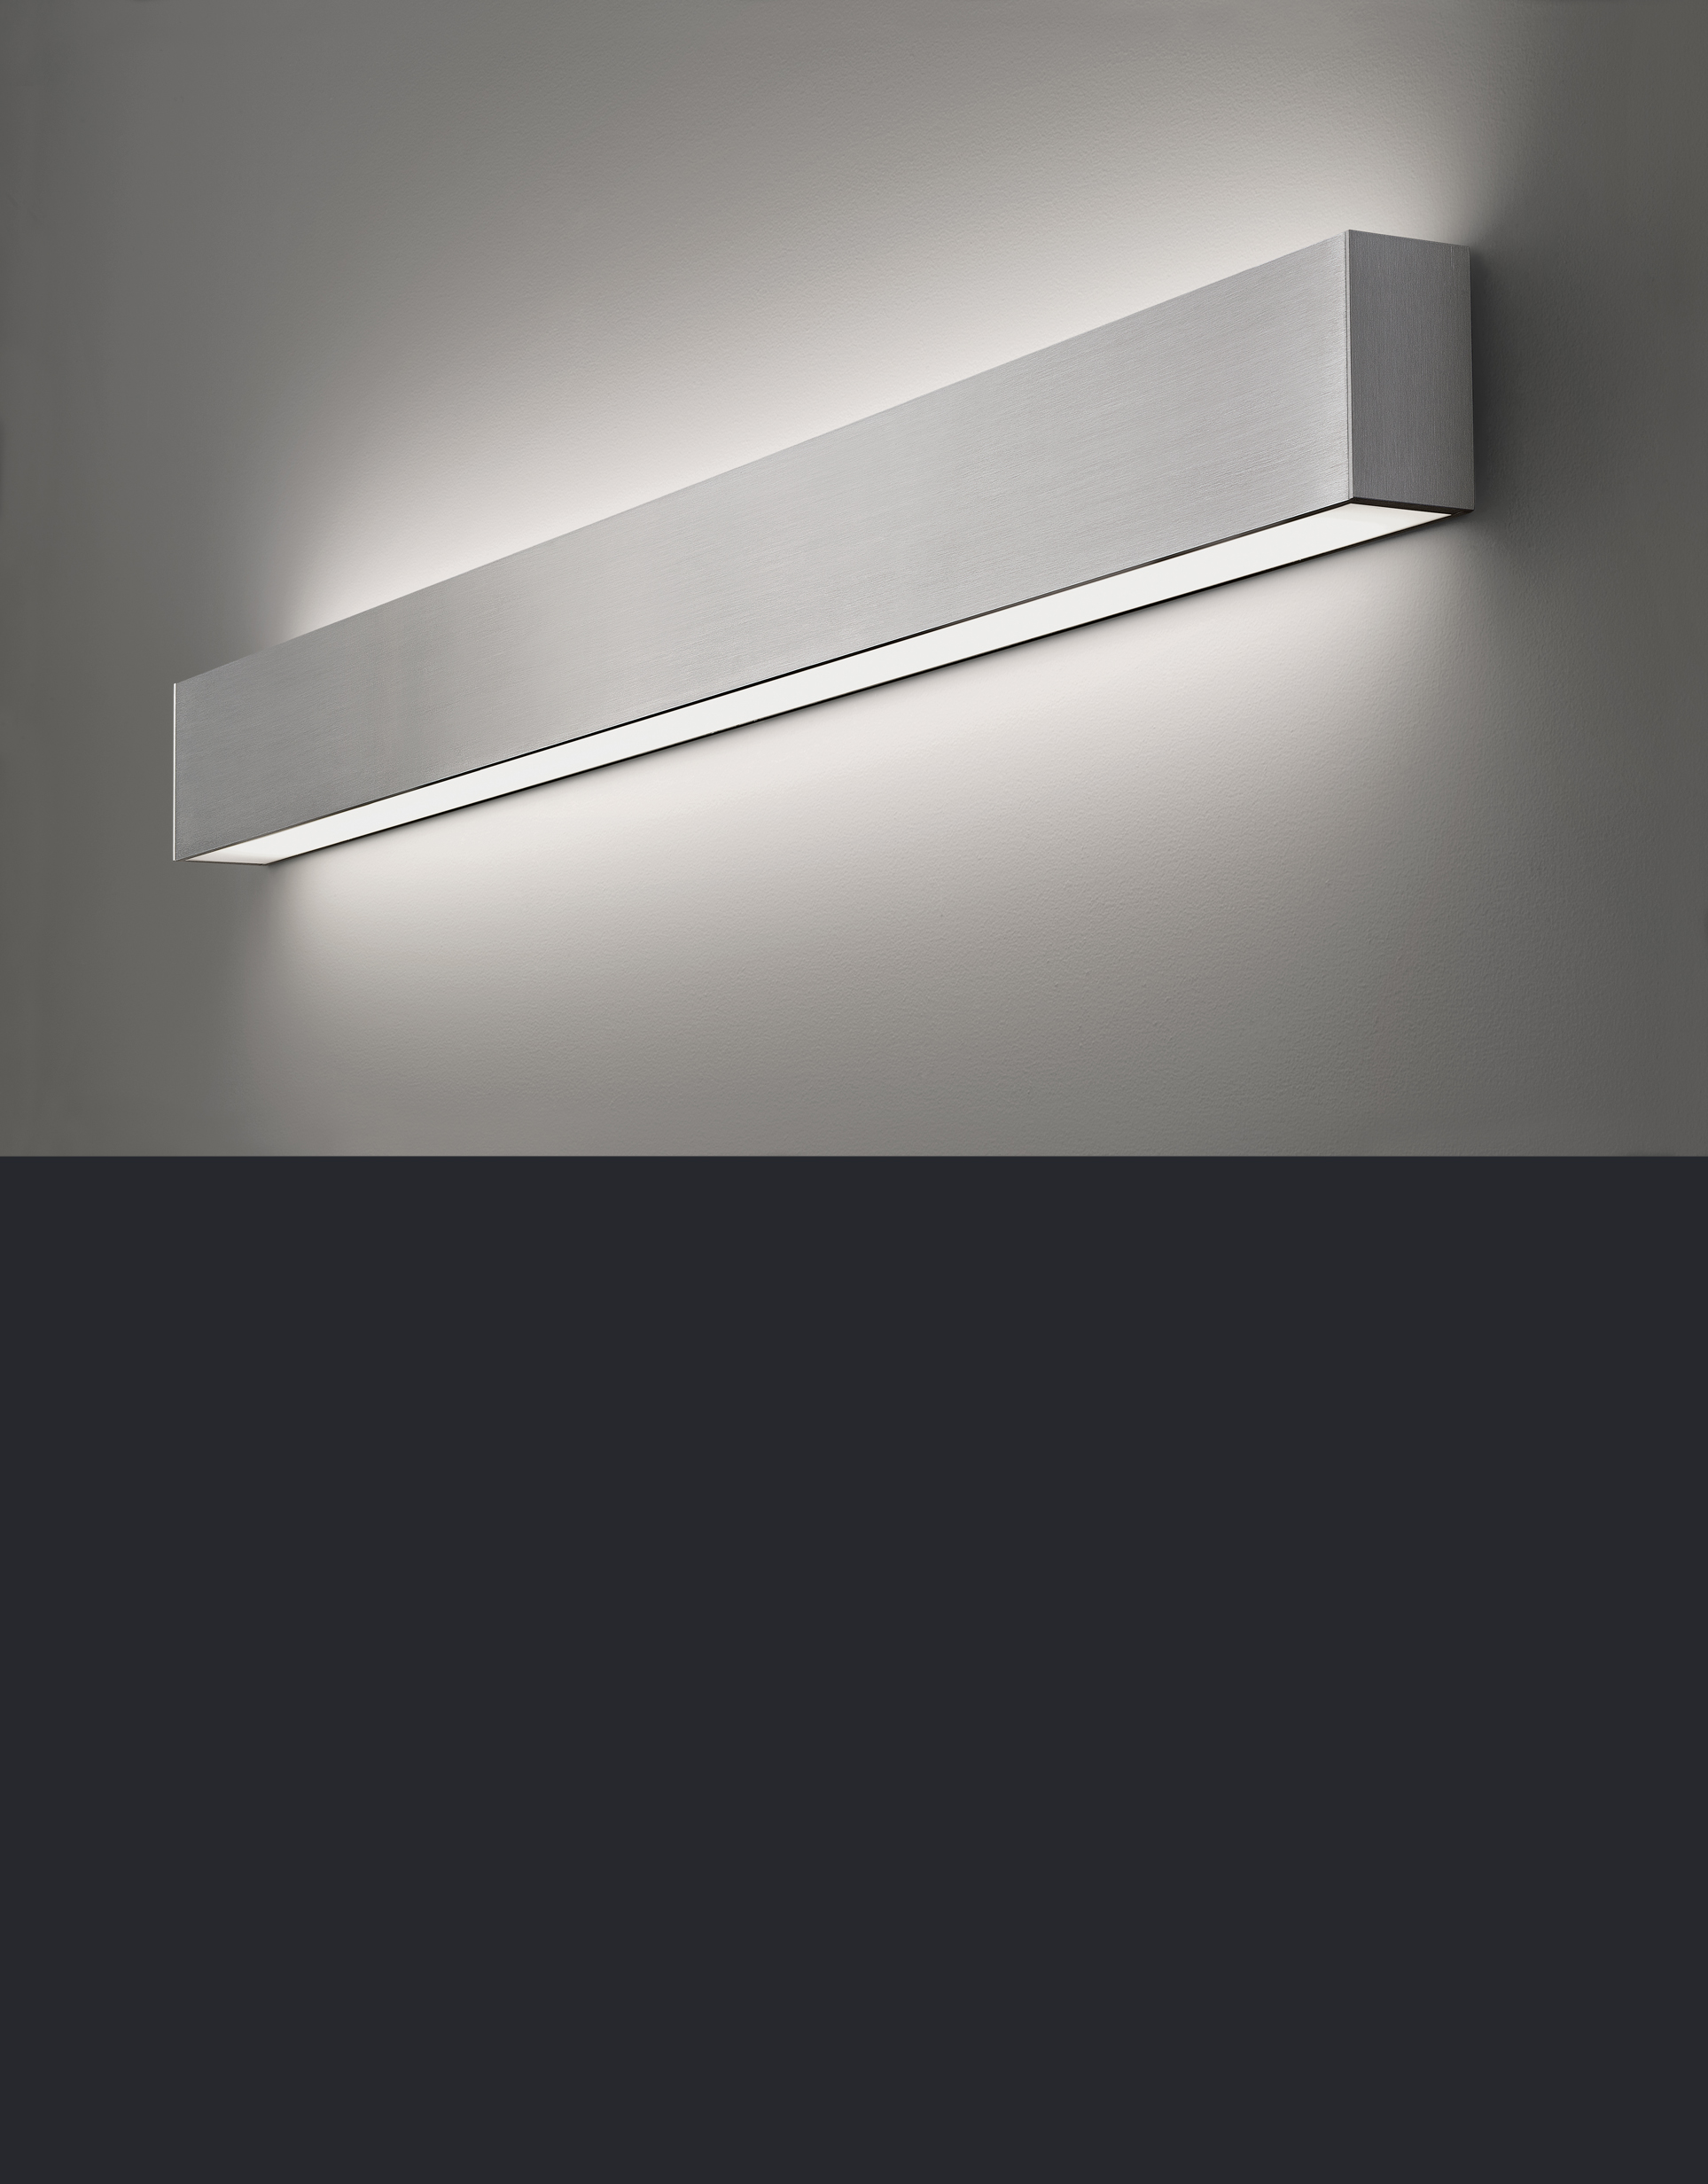 Duo Sconce Ocl Architectural Lighting